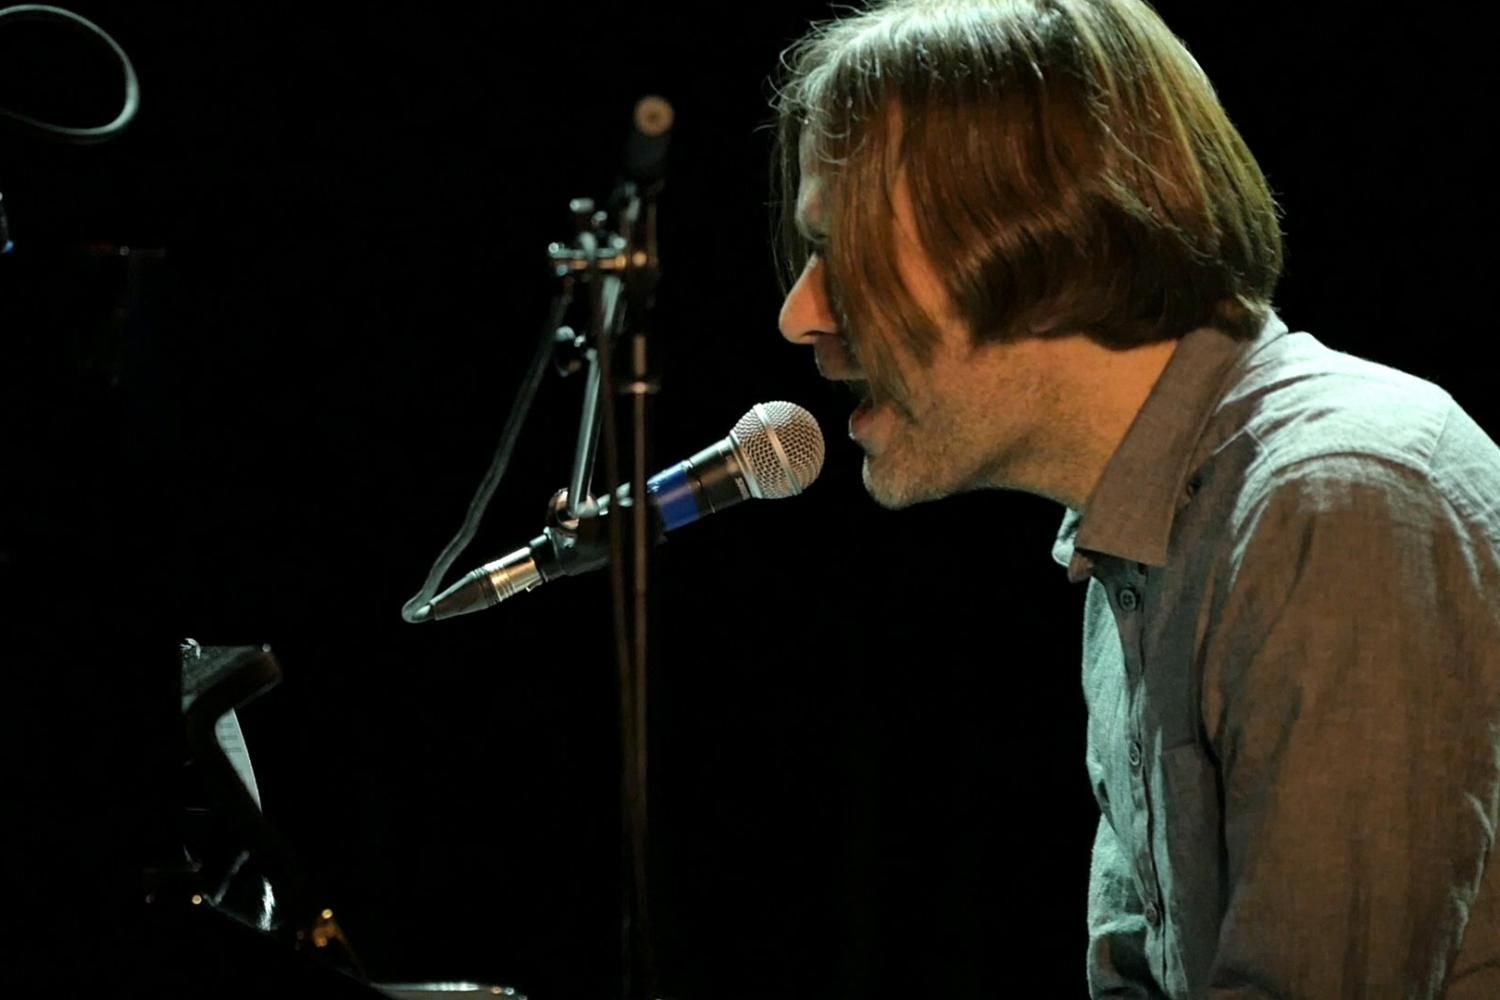 Watch Death Cab For Cutie's Ben Gibbard cover Alvvays' 'Archie, Marry Me' in full